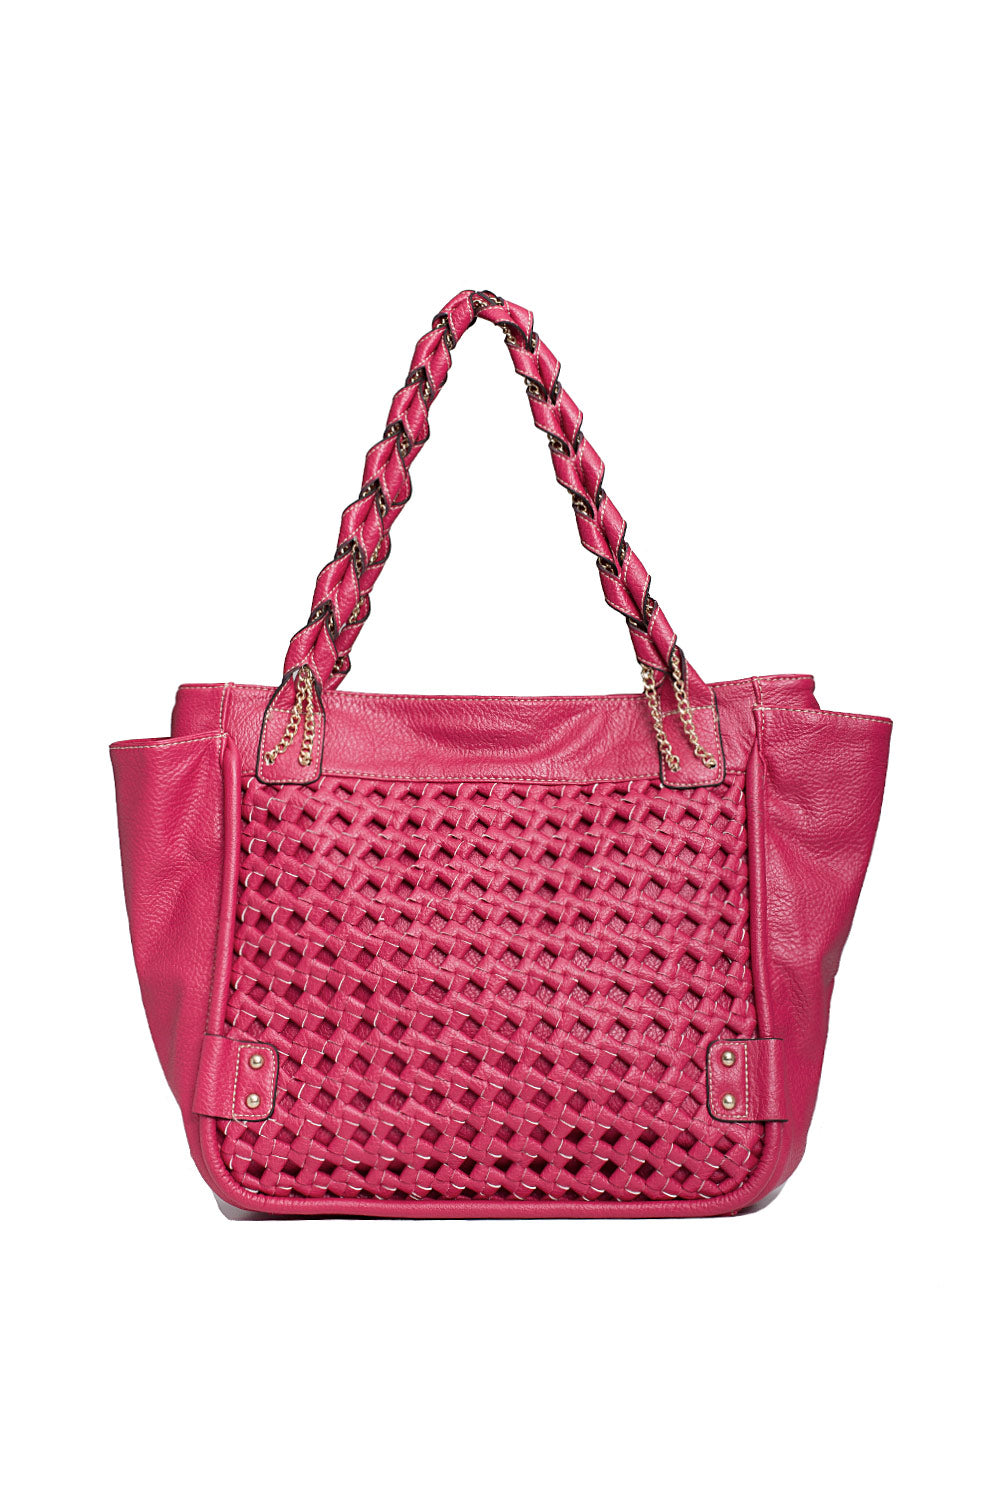 Type 3 Linked Together Handbag